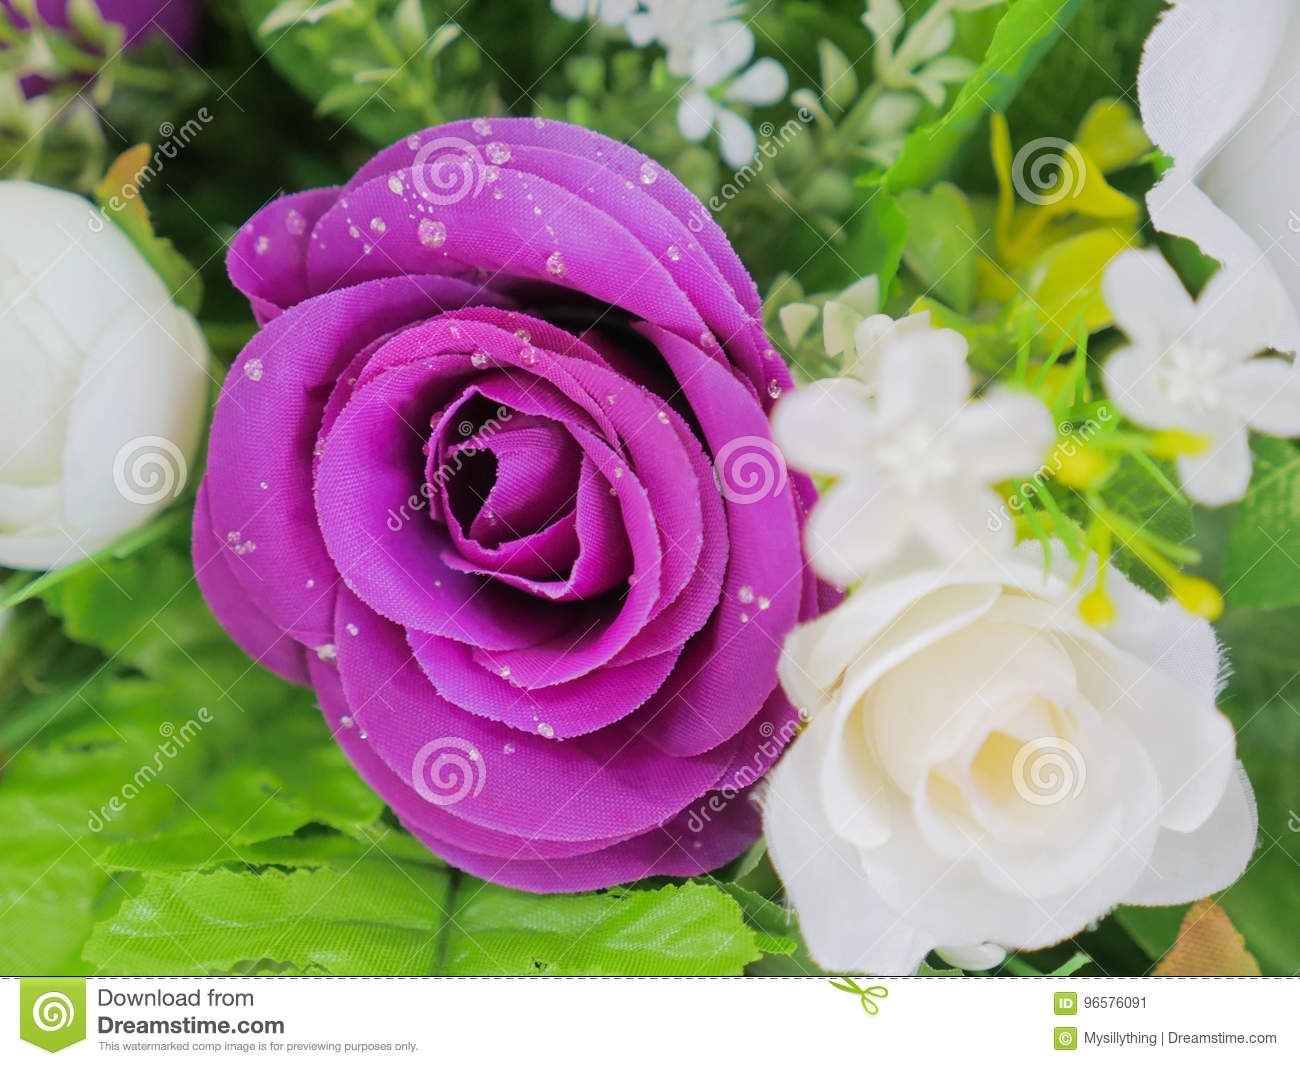 Fake purple rose flowers with artificial water drop stock image download fake purple rose flowers with artificial water drop stock image image of purple izmirmasajfo